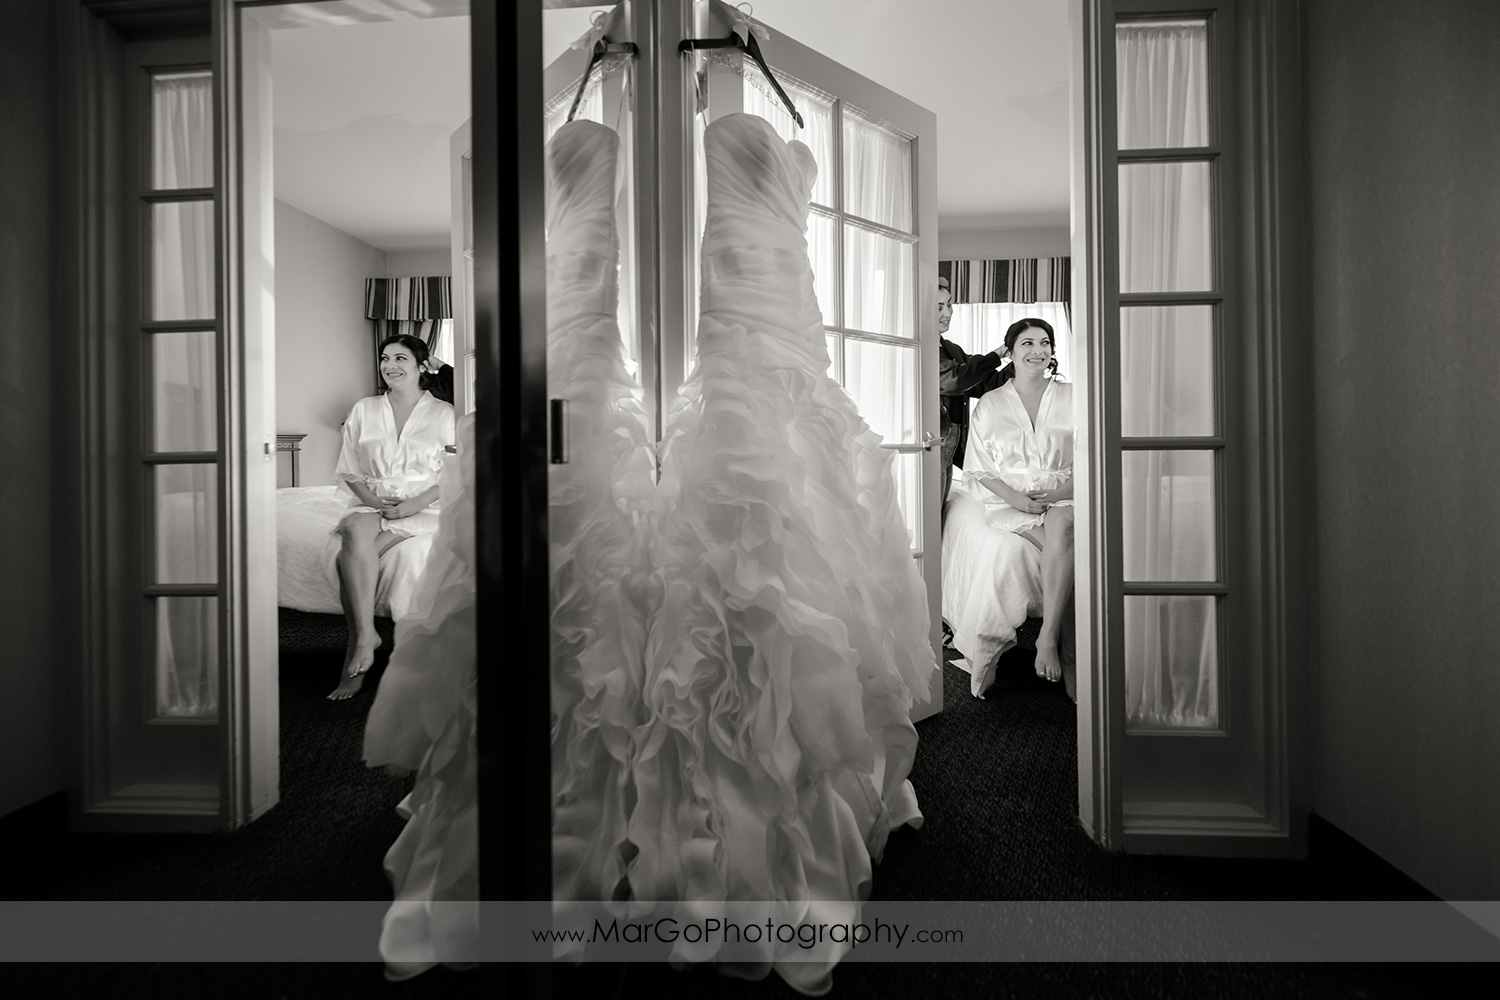 wedding dress with bride getting ready in the background at Hilton Garden Inn Livermore